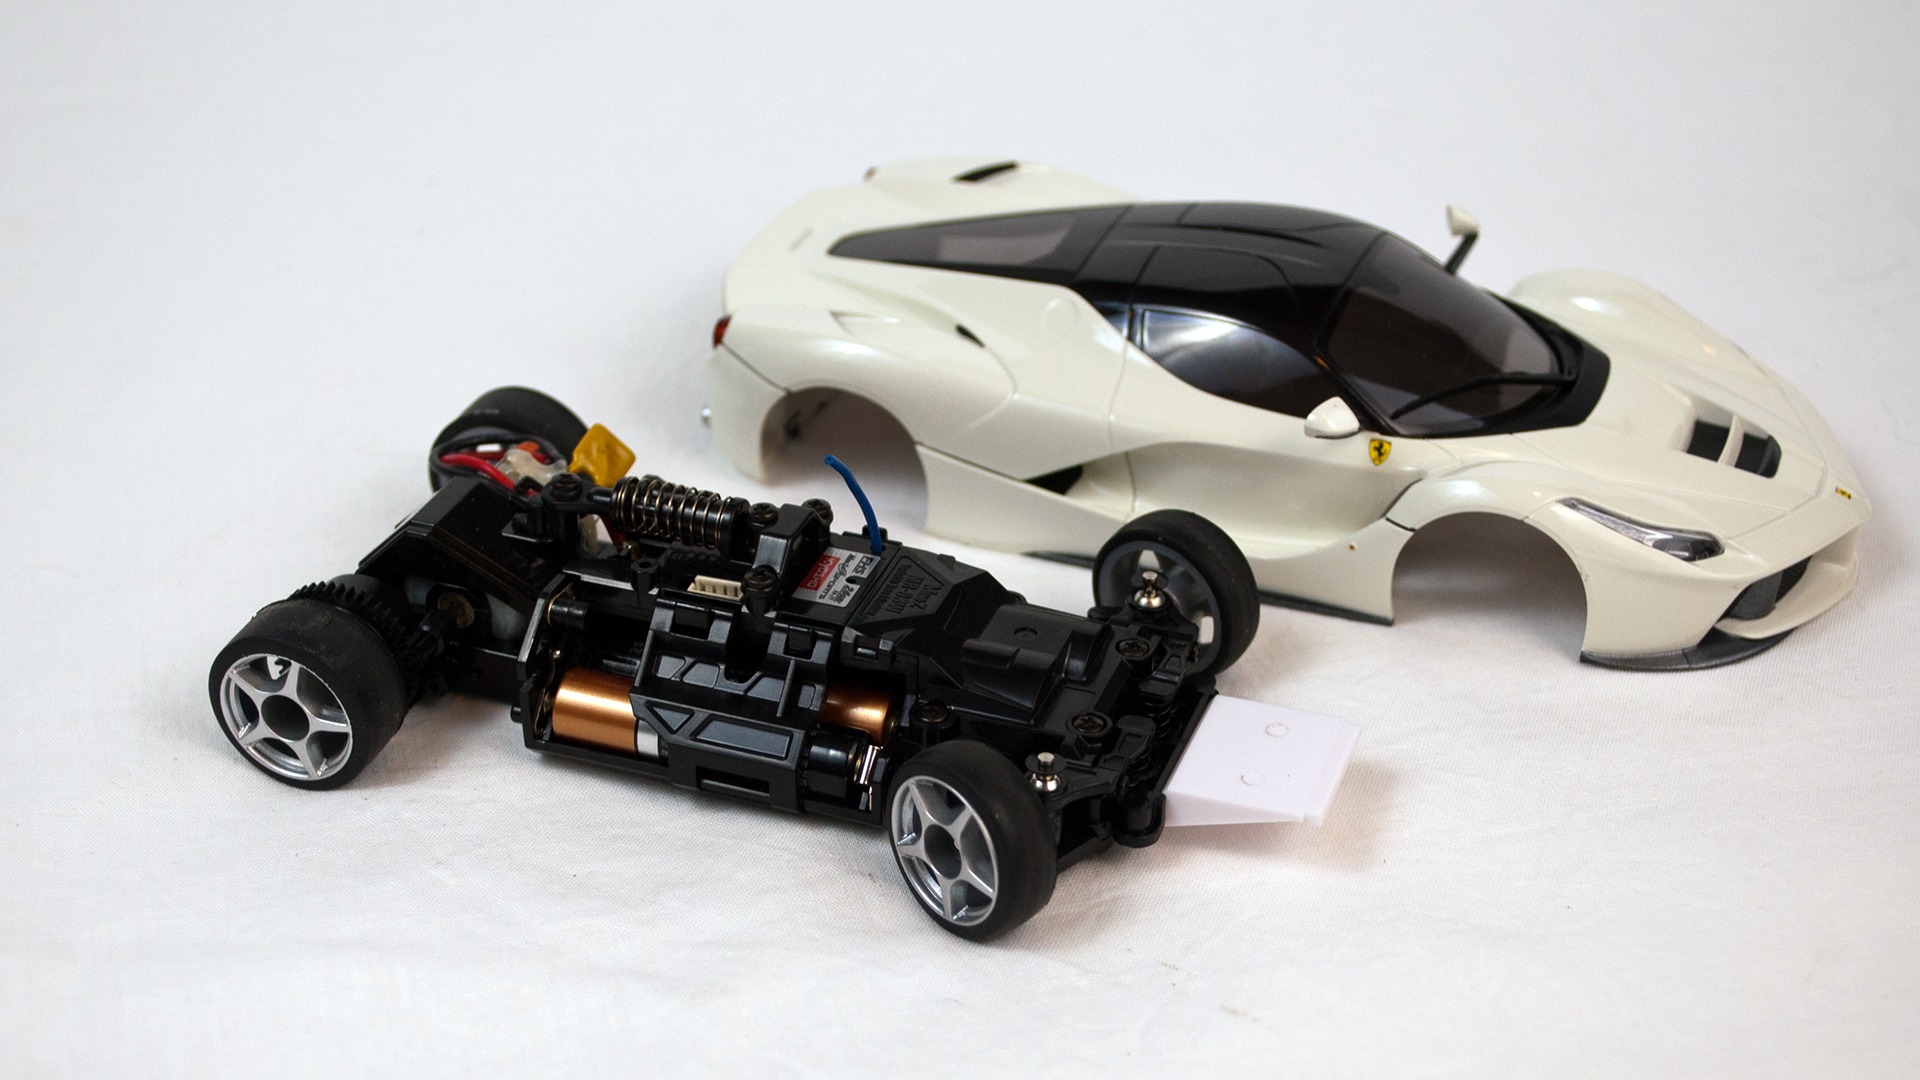 How to Get Into Hobby RC Tested